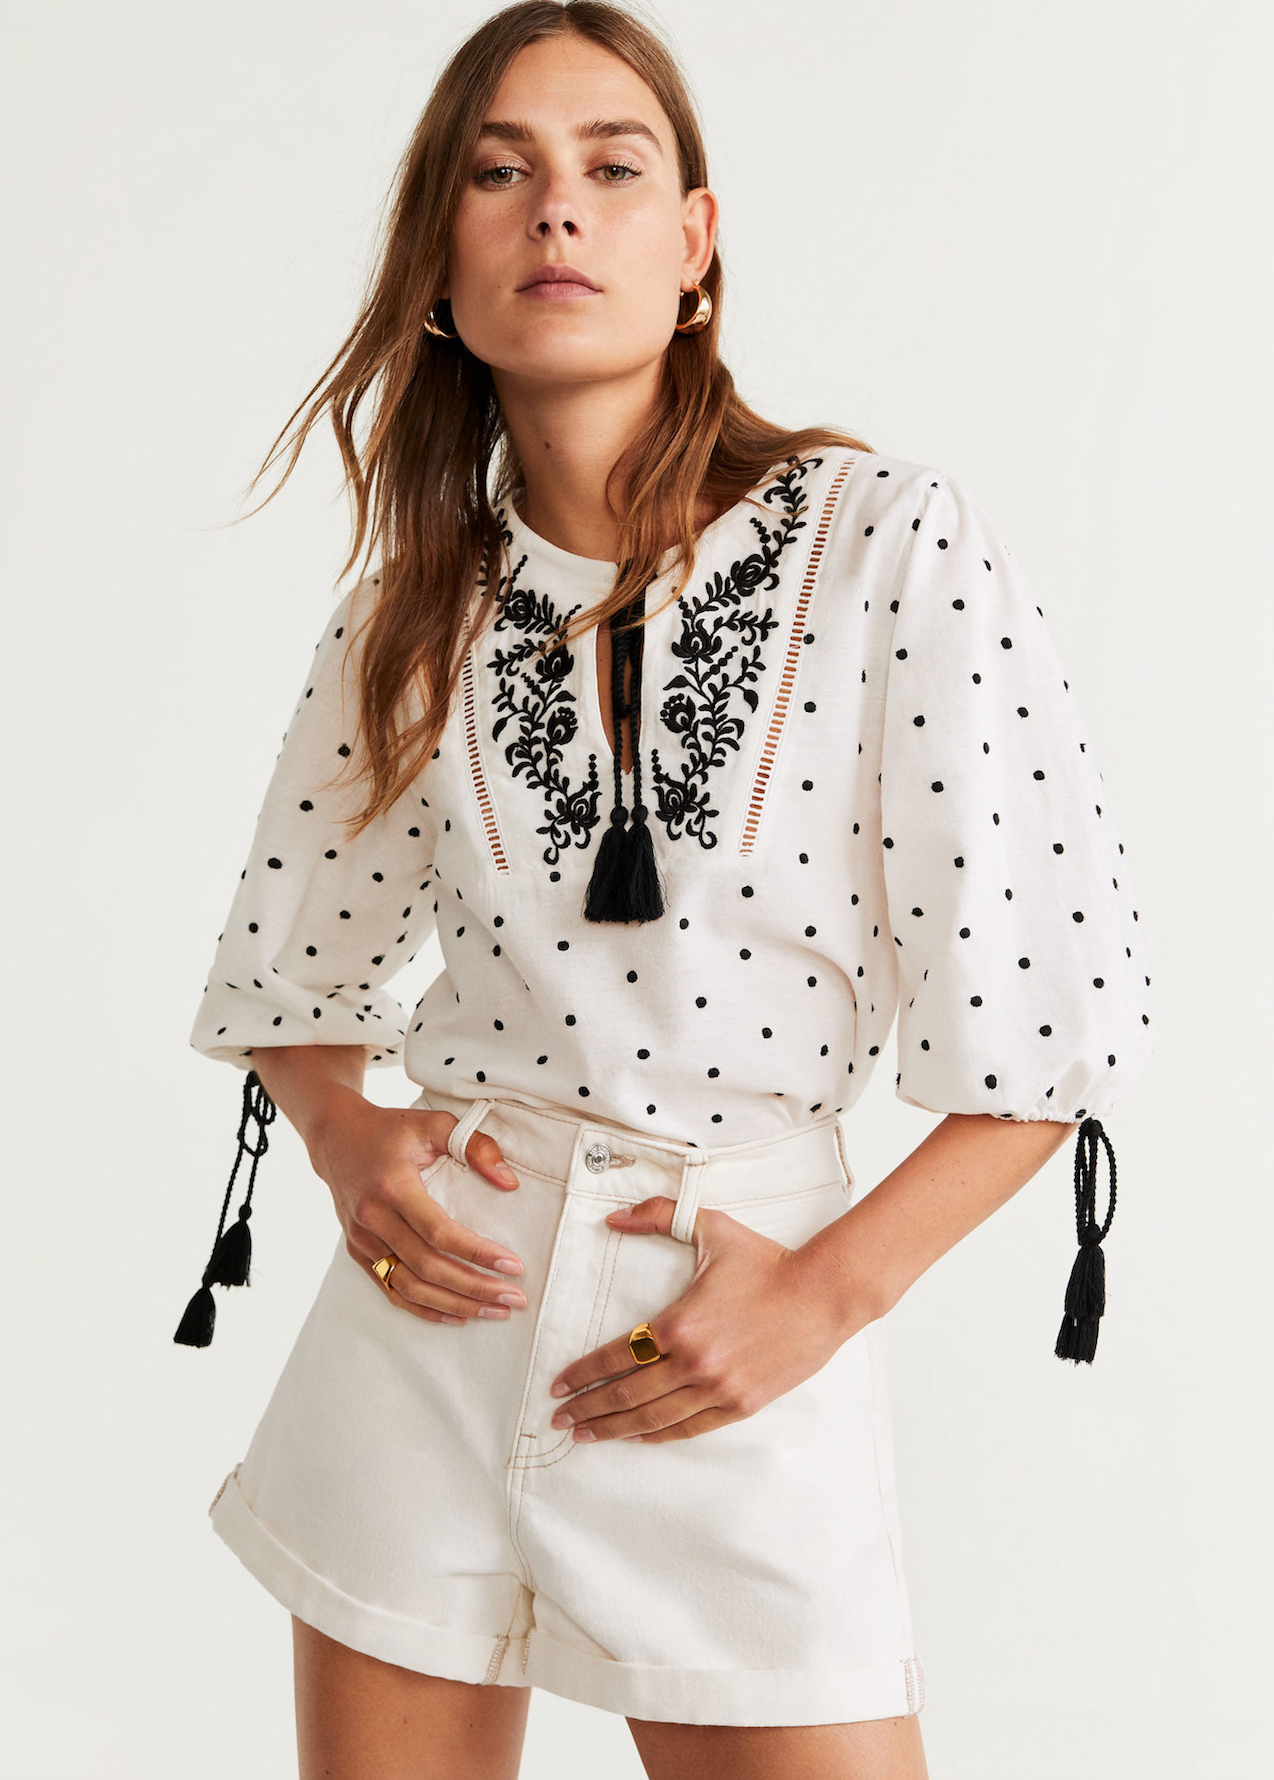 Embroidered Polka Dot Blouse